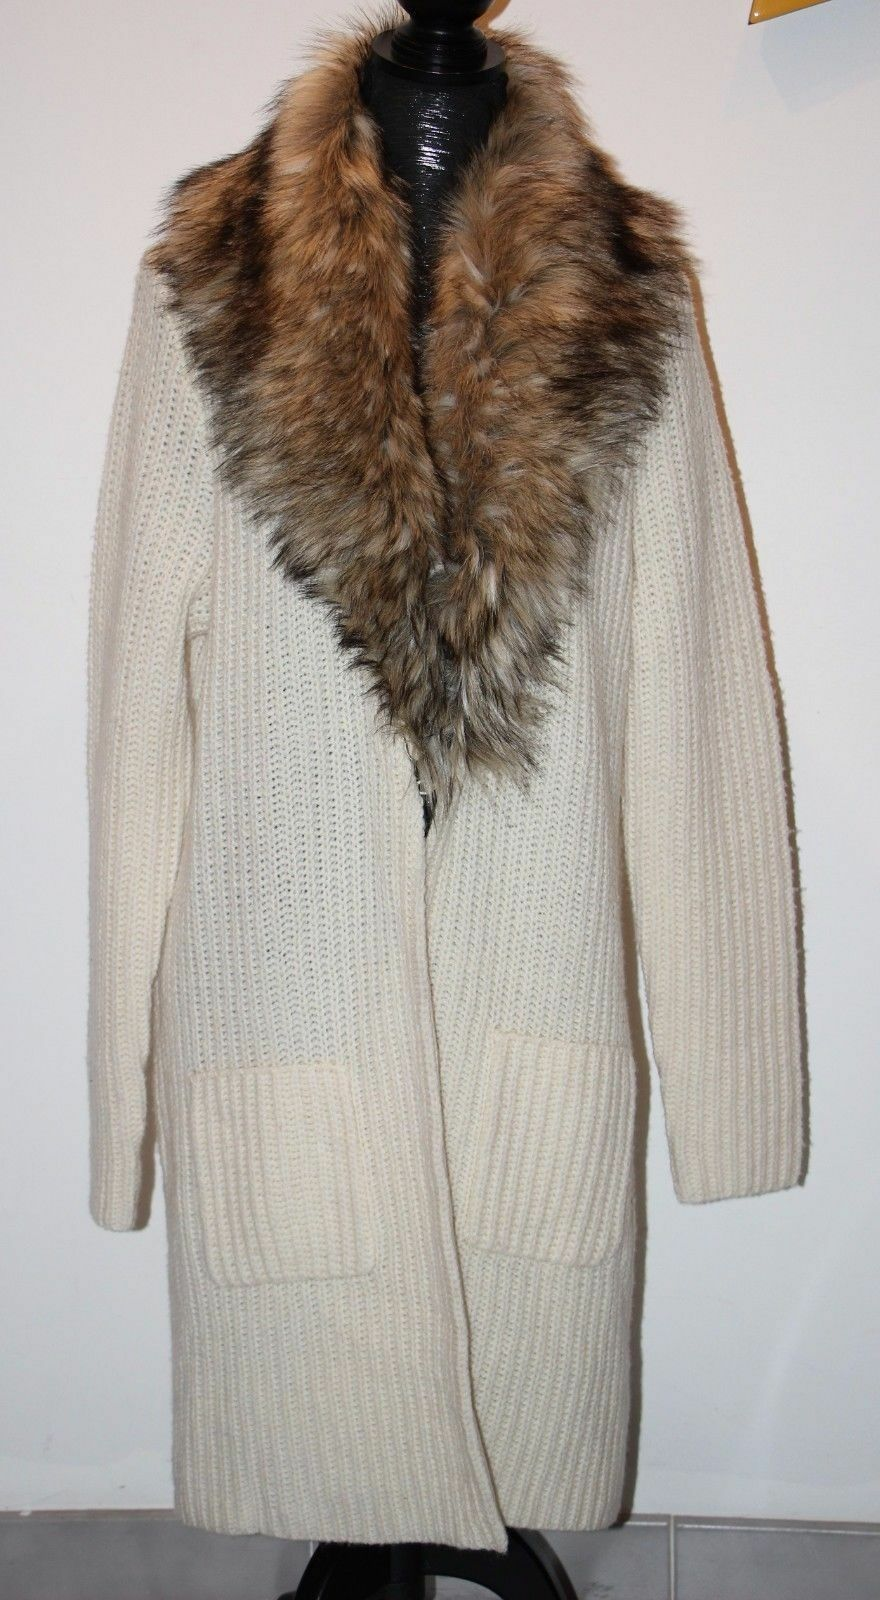 Ralph Lauren Faux Fur Collar Knitted Coat Cardigan in Morning Cream XS-L-XL